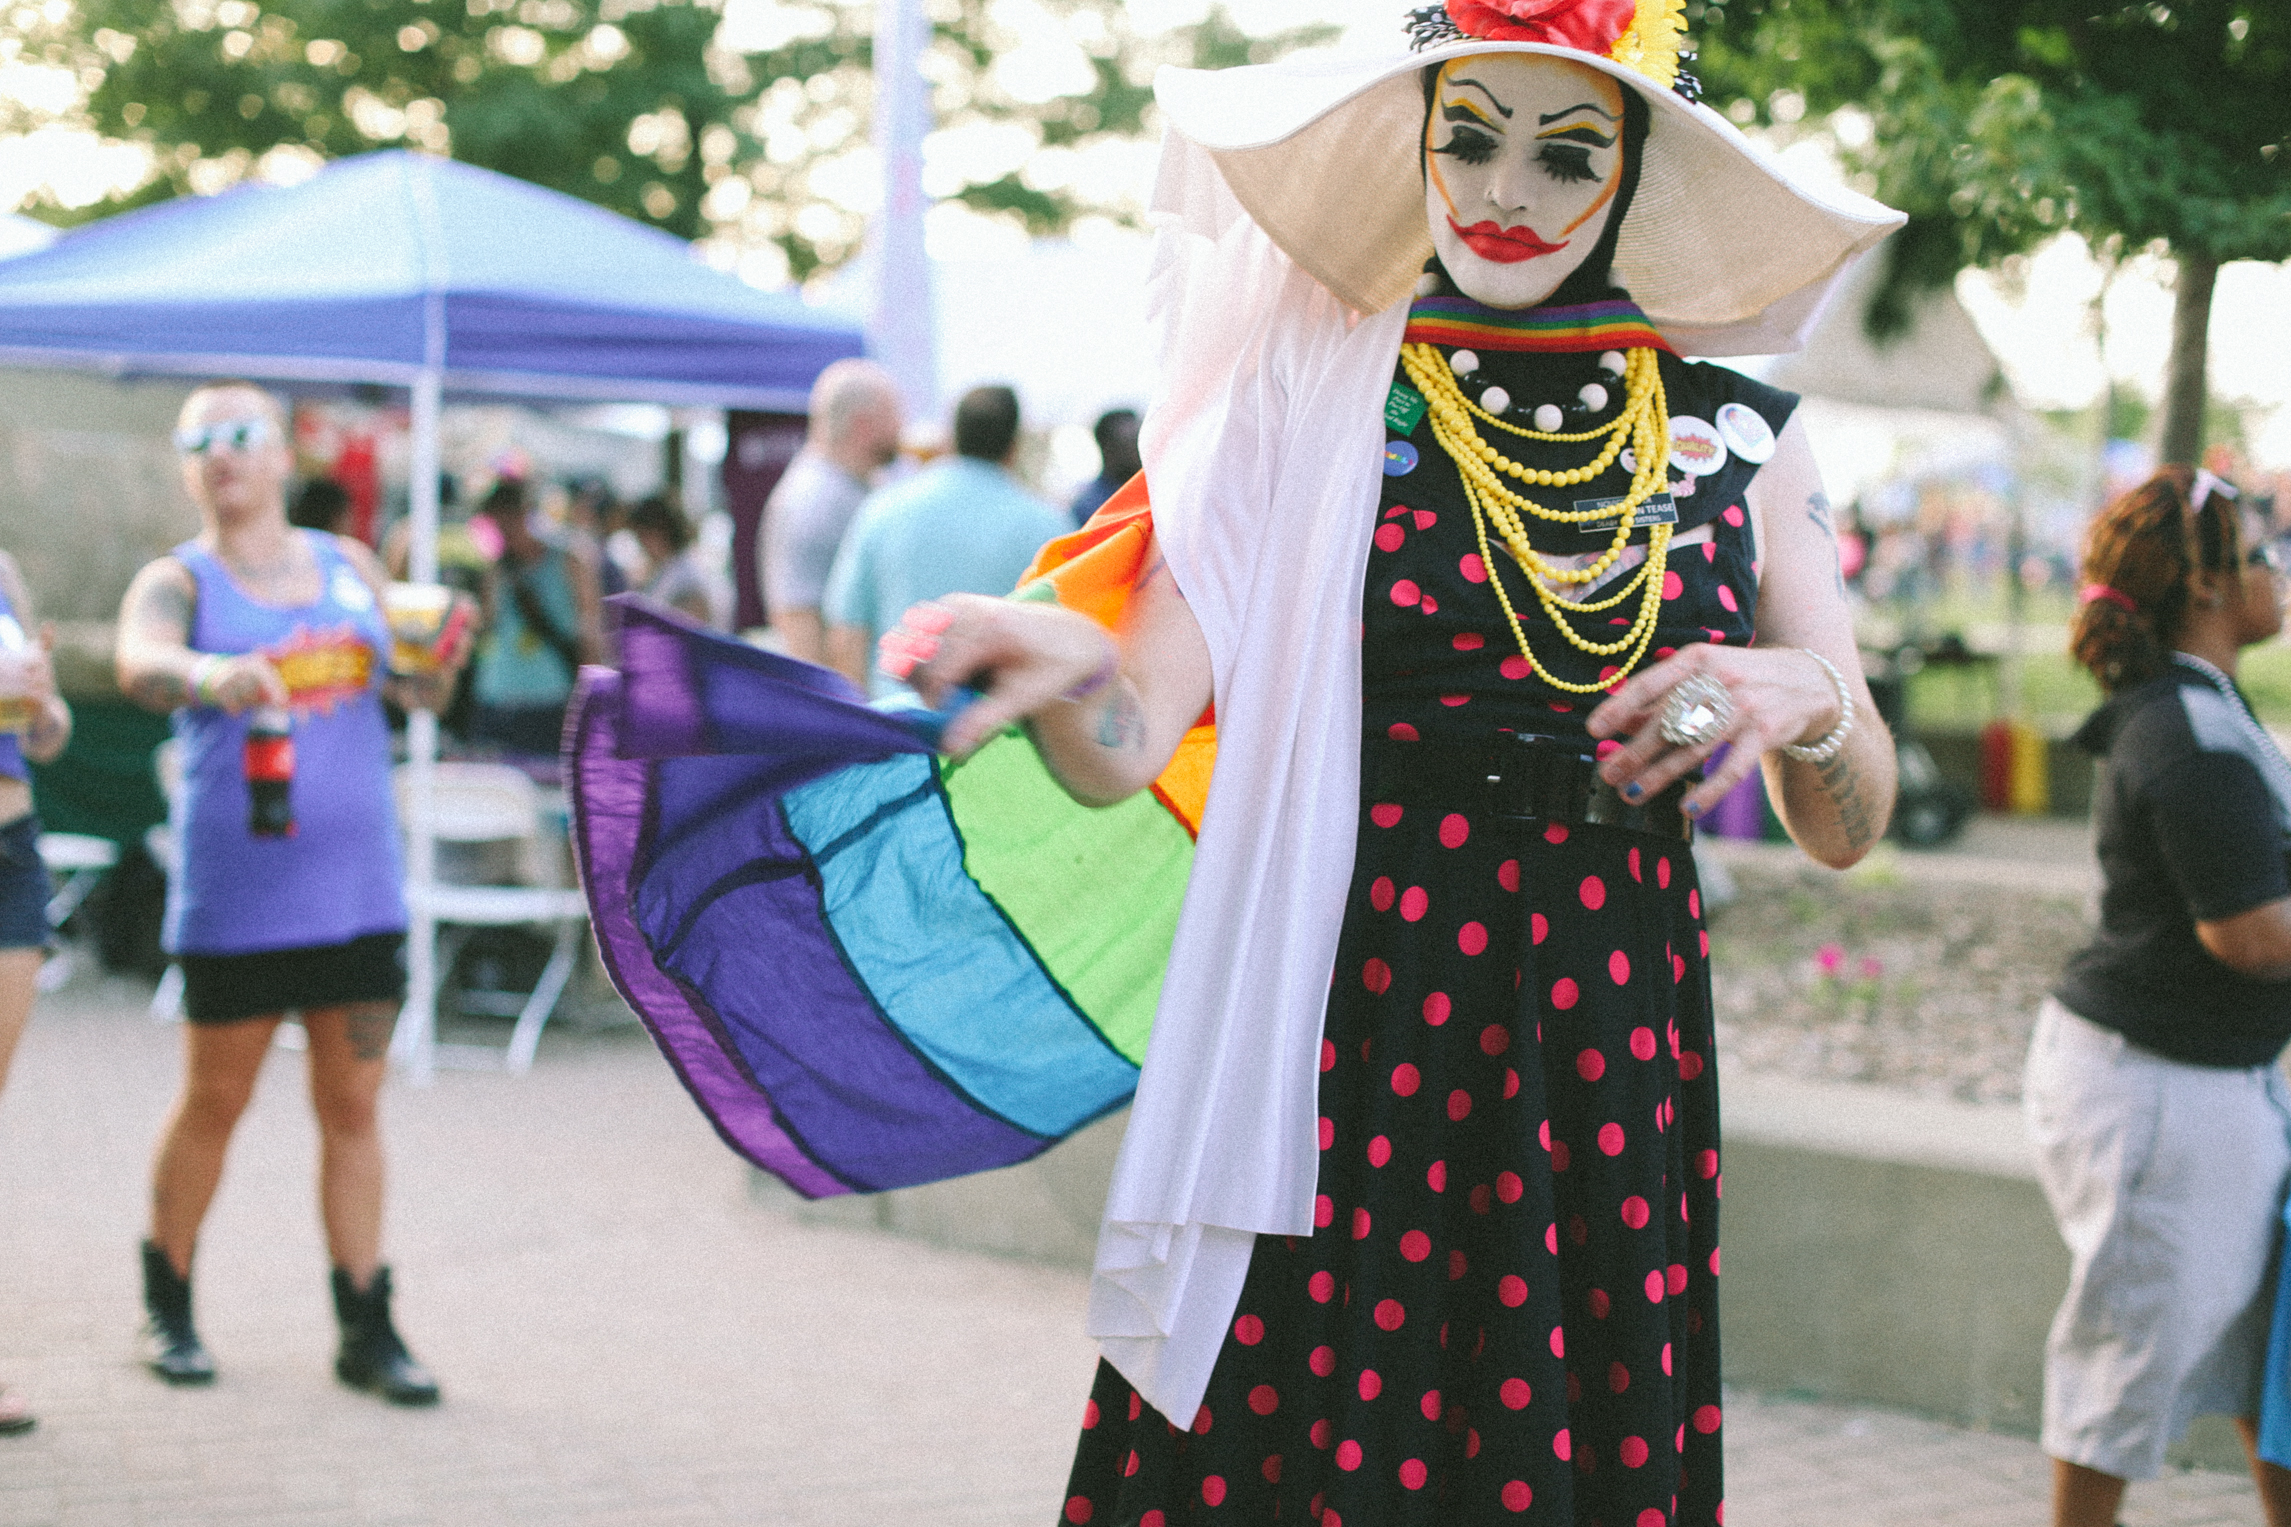 PRIDE W-FEVA 2015 EDITED CRYSTAL LUDWICK PHOTO (82 of 83).jpg